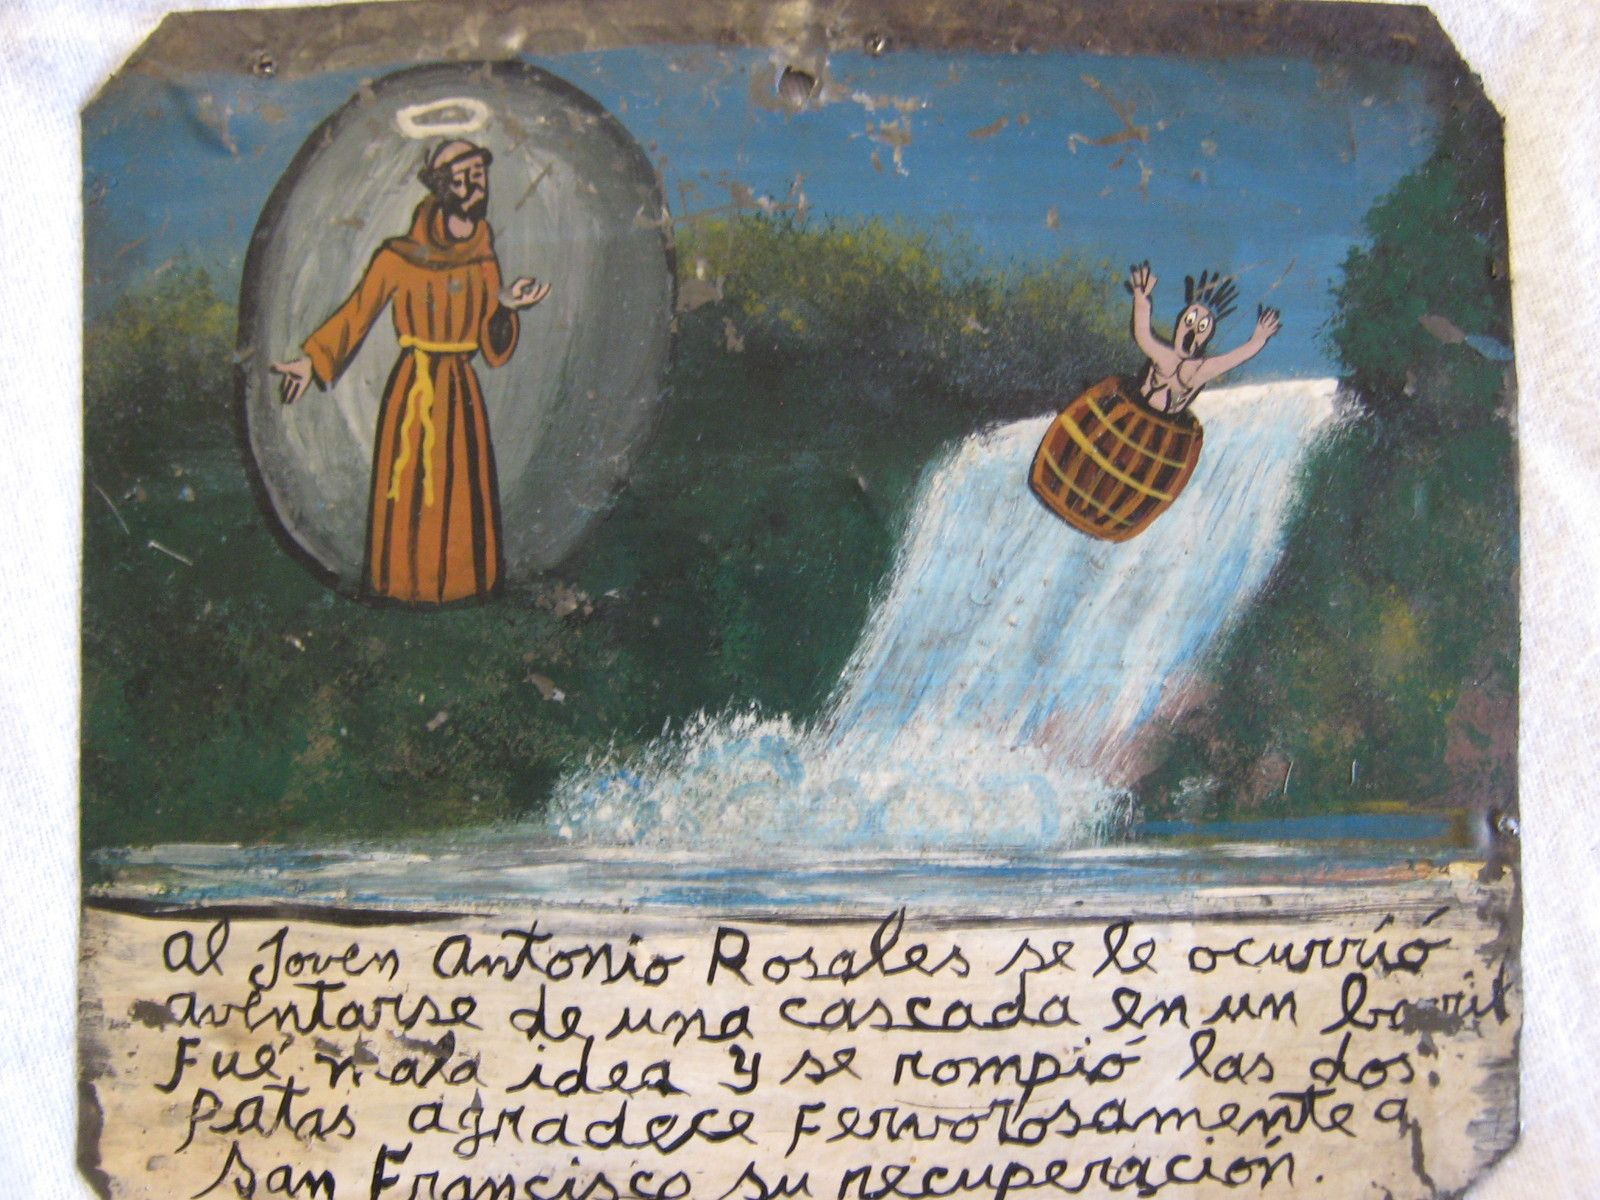 The writing in Spanish says: Antonio Rosales decided it was a good idea to jump off a waterfall inside a barrel. It was a bad mistake, because he broke both his legs. He gives thanks to San Francisco for his recovery.